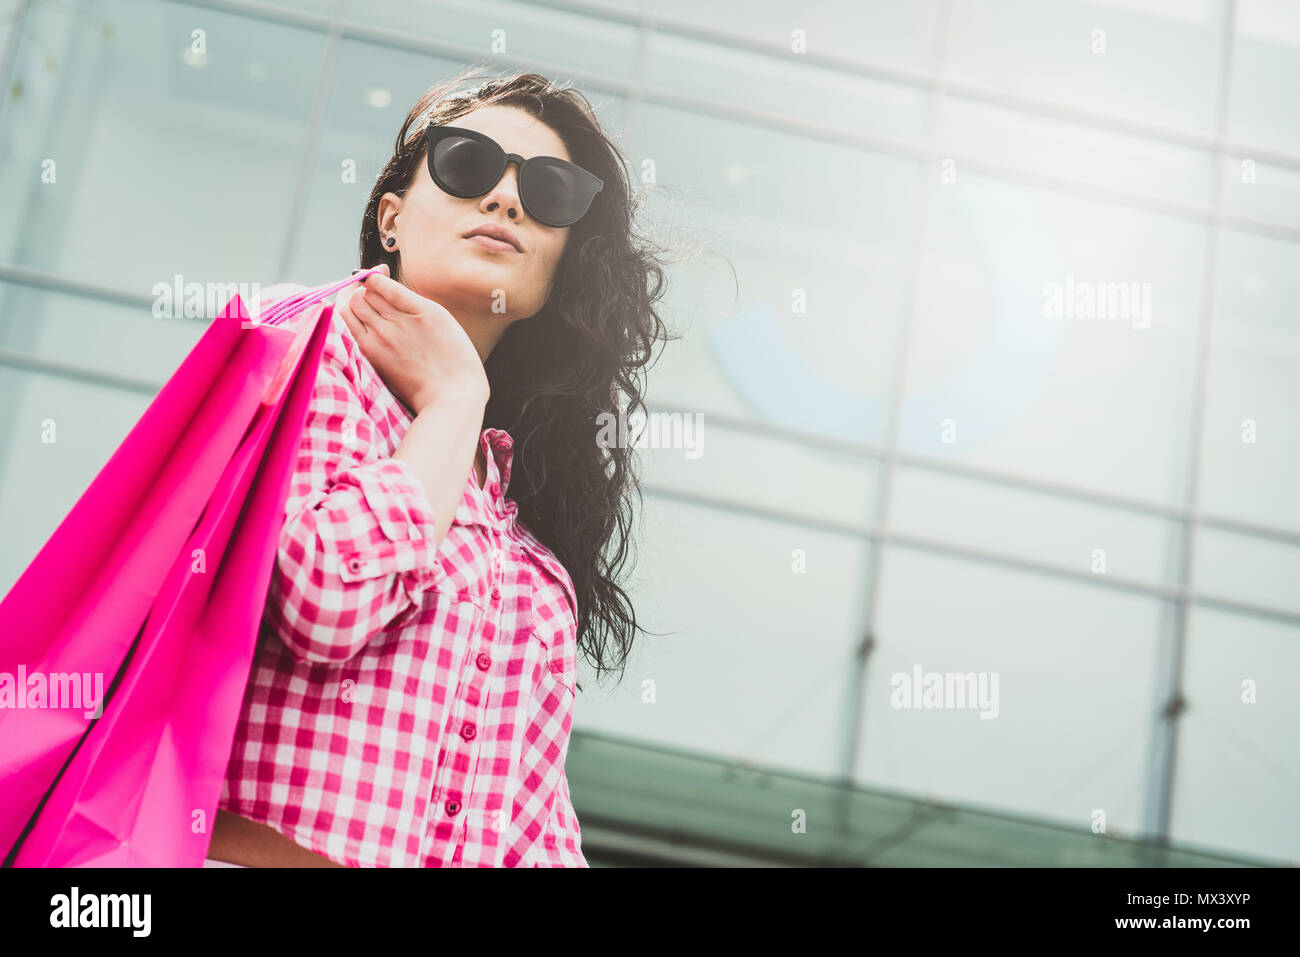 Happy and smiling girl enjoys shopping. Shopping concept. A young woman is satisfied with the things she bought. Female goes out with shopping bags. - Stock Image